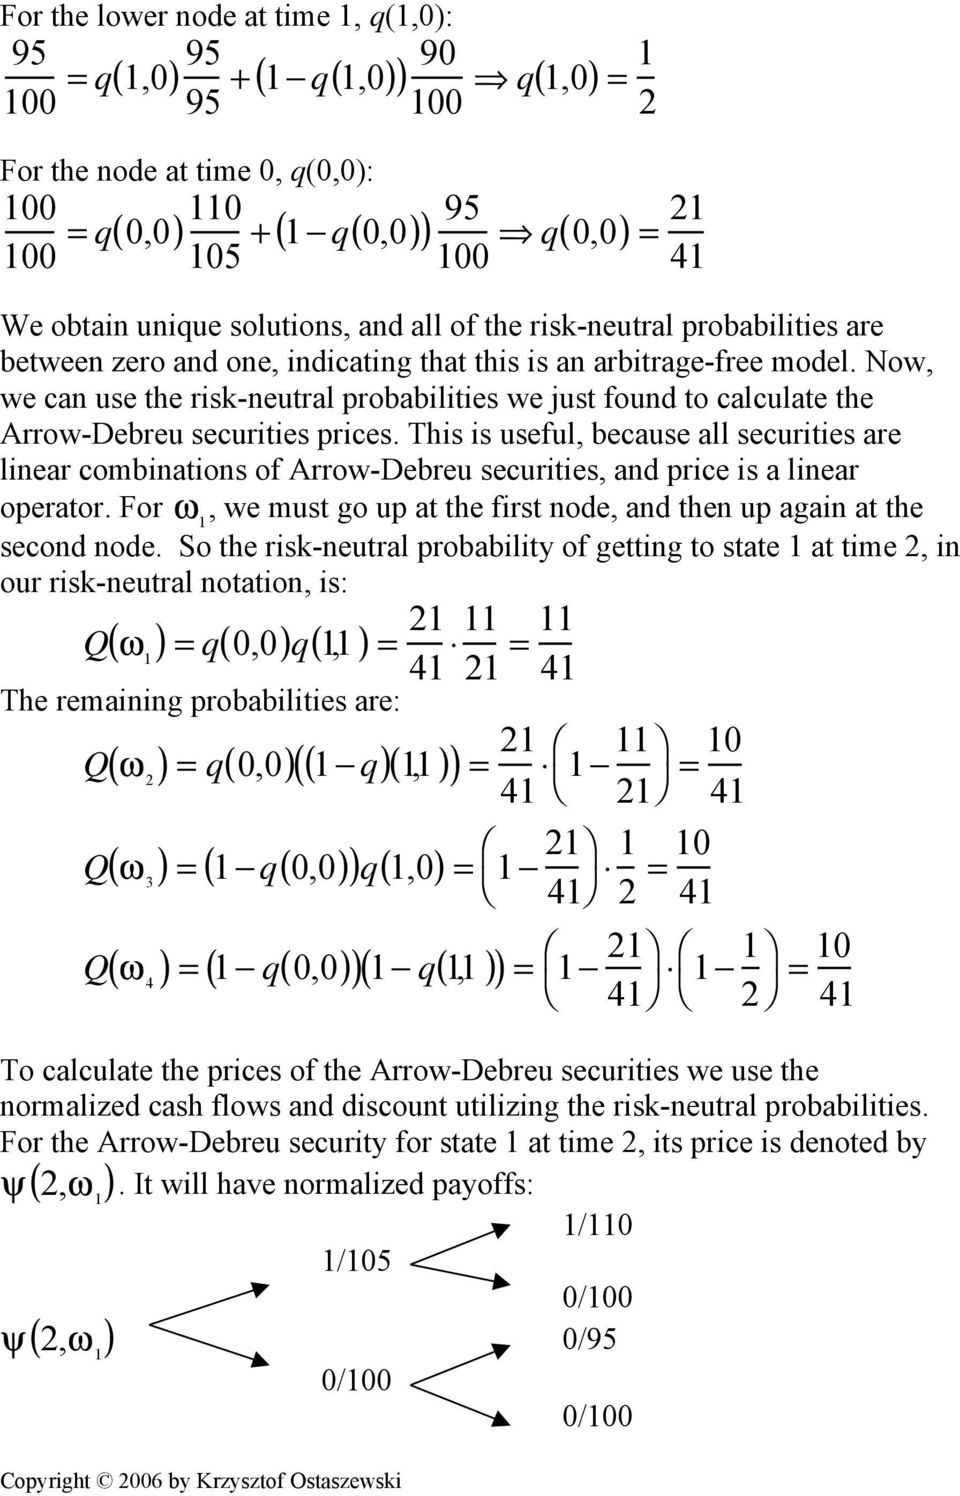 Now, we can use the risk-neutral probabilities we just found to calculate the Arrow-Debreu securities prices.